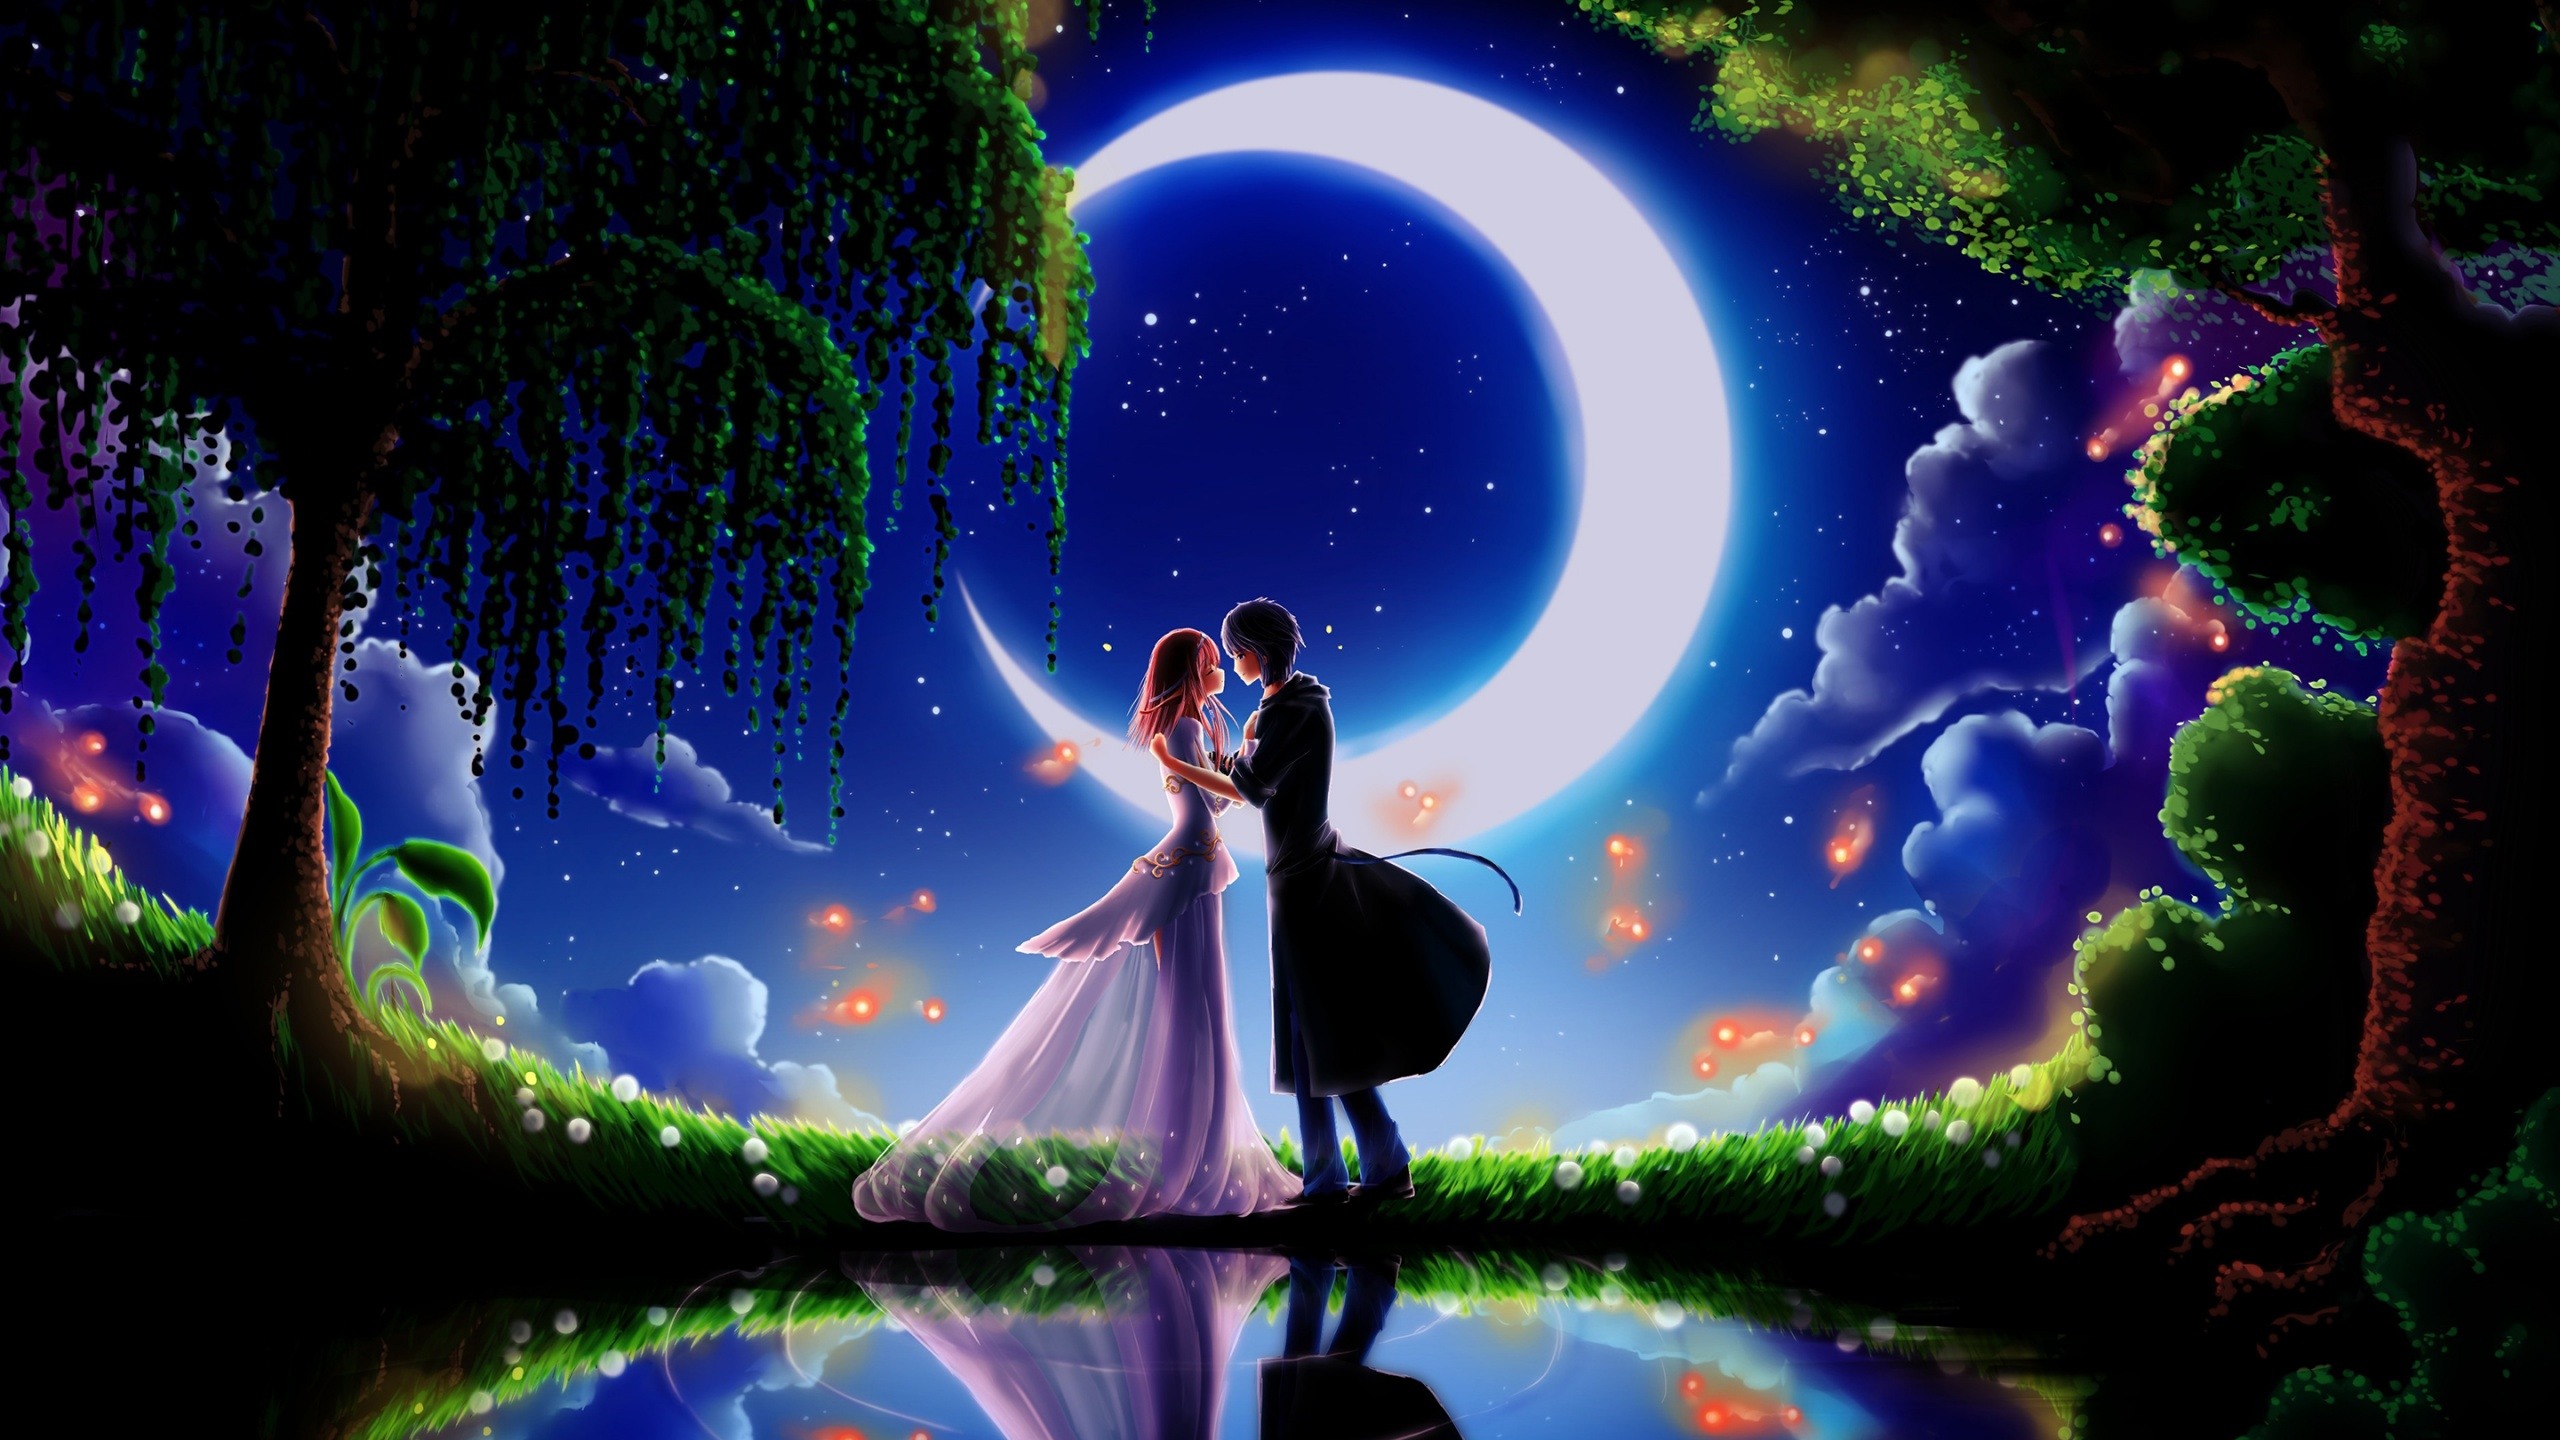 Romantic Love Girl Wallpaper : Kiss Wallpapers Best Wallpapers